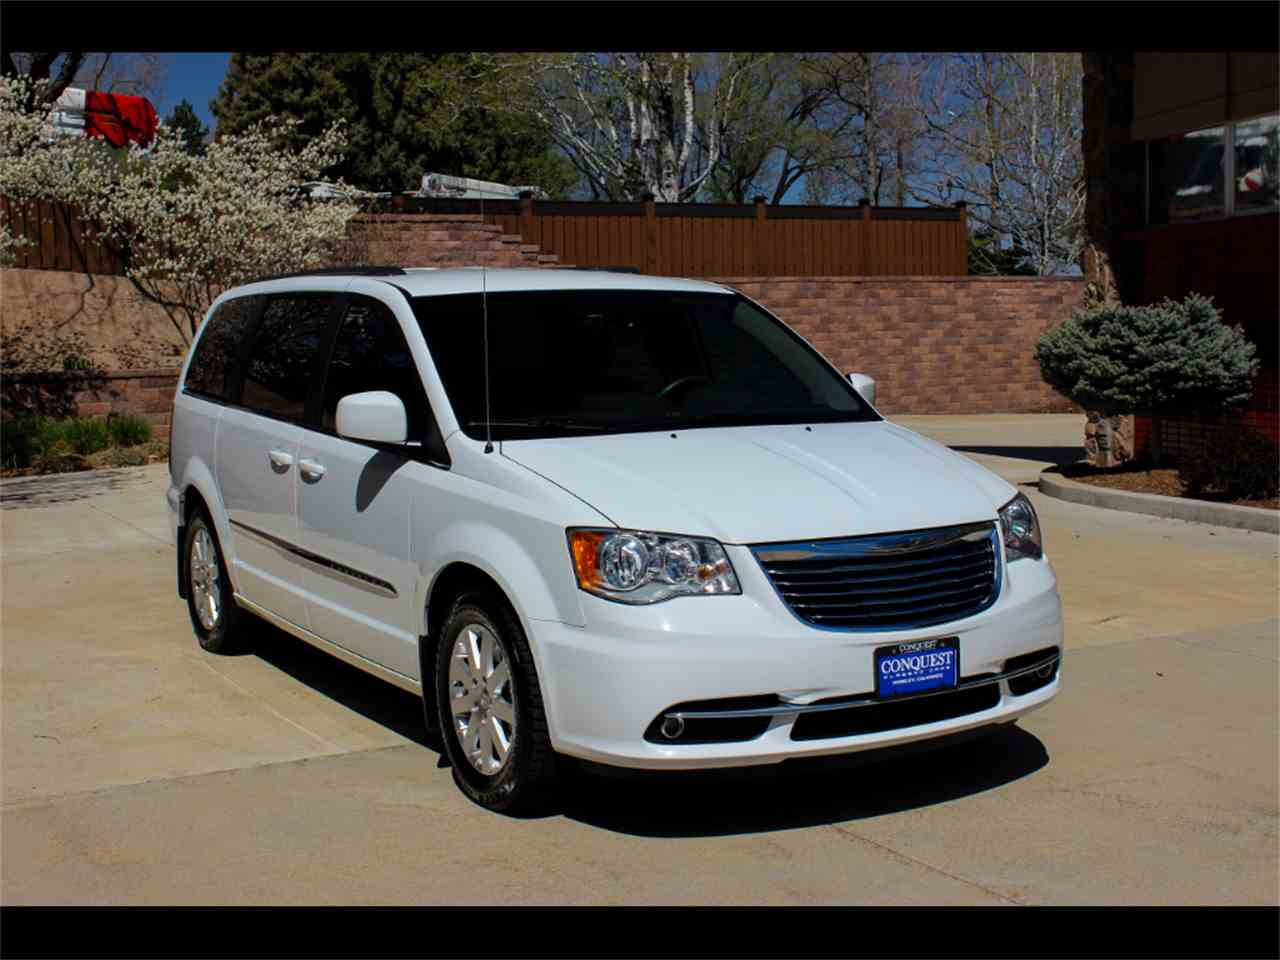 door sale used near car in all cars chrysler wheel me sherwood new of drive for